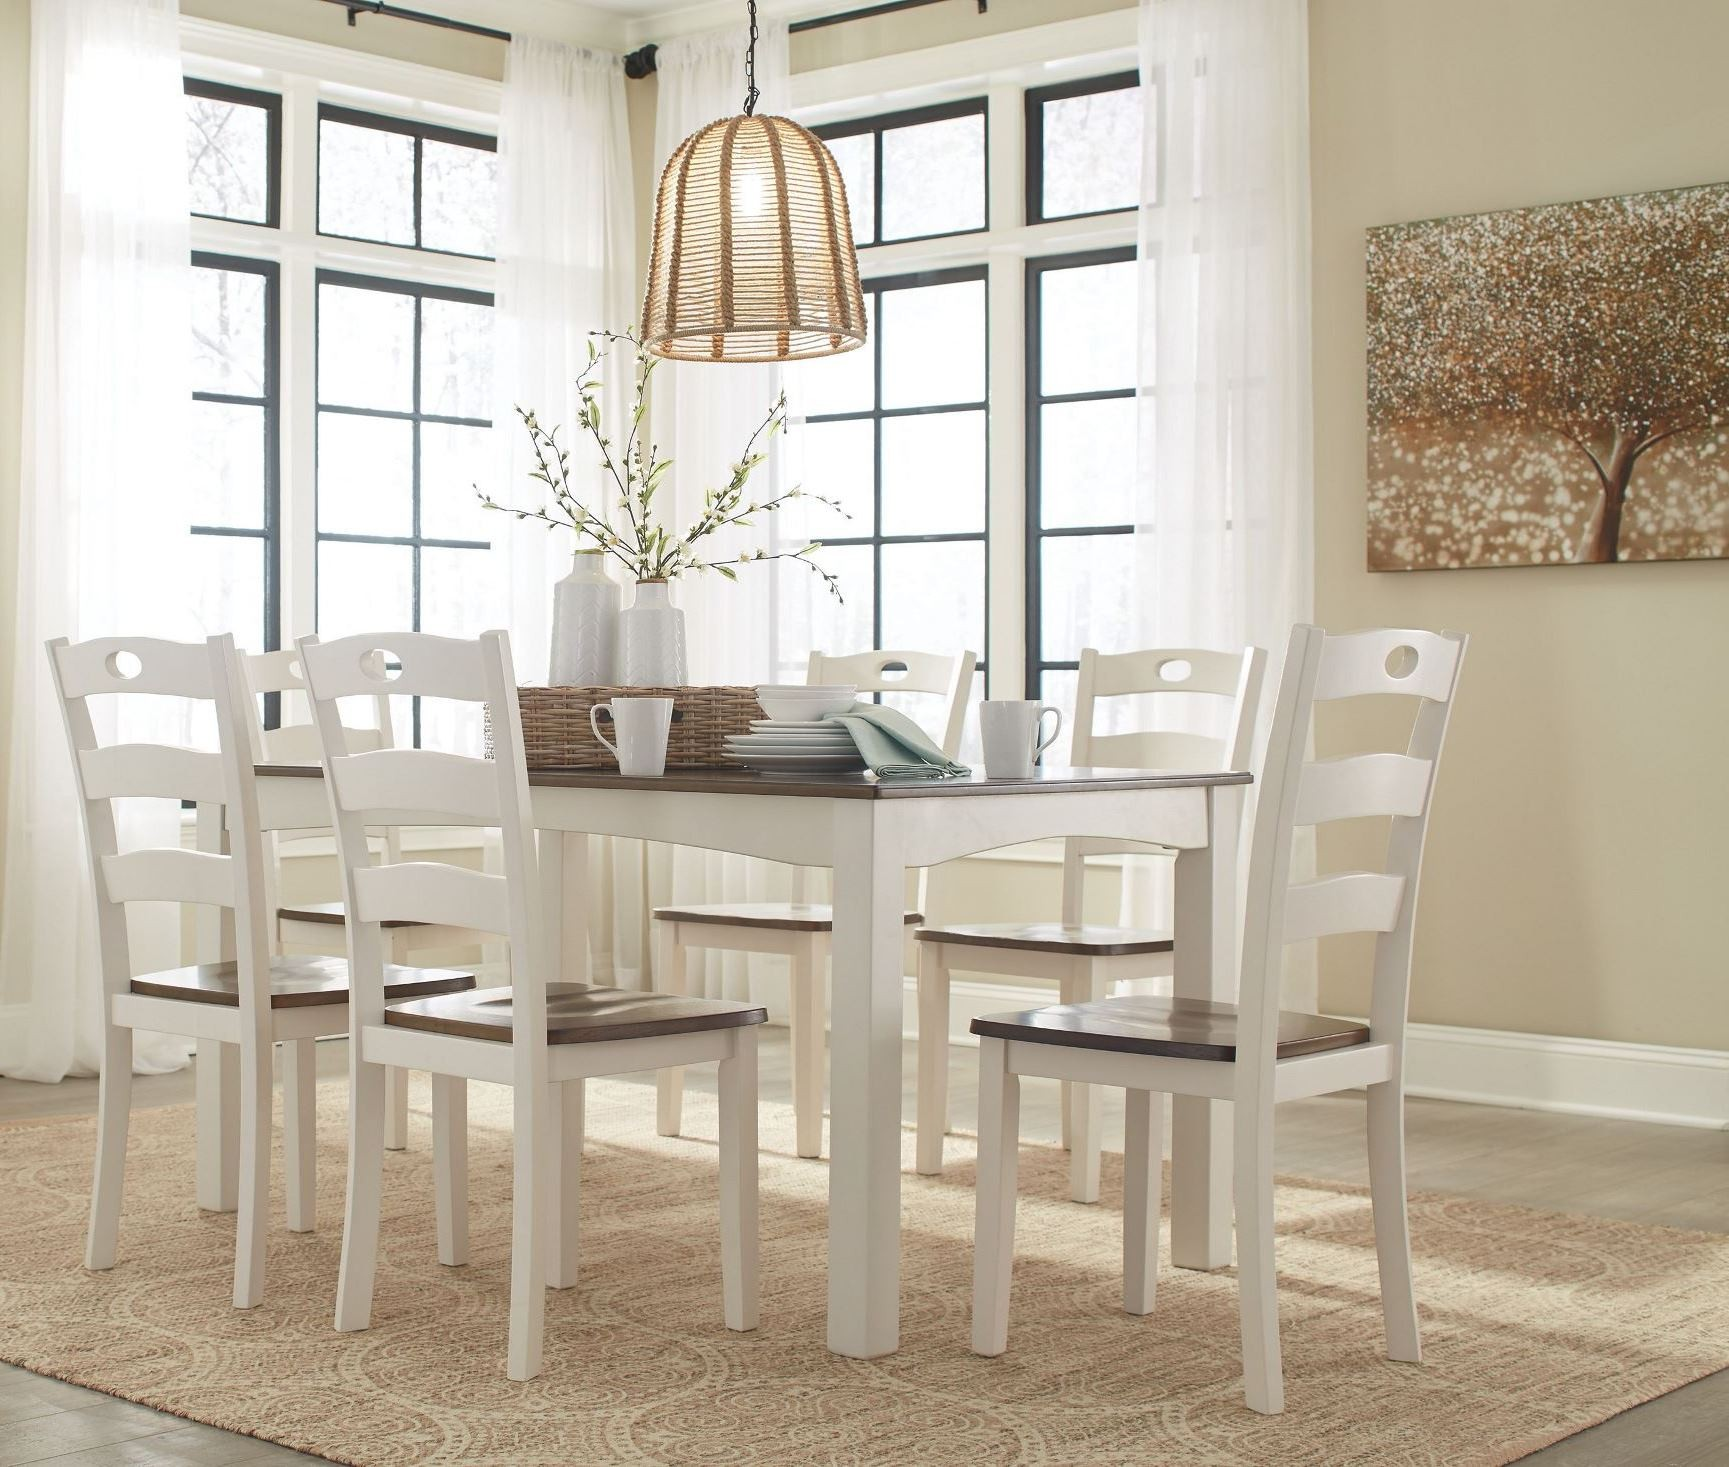 7 Piece Dining Room Set: Woodanville White And Brown 7 Piece Dining Room Set, D335